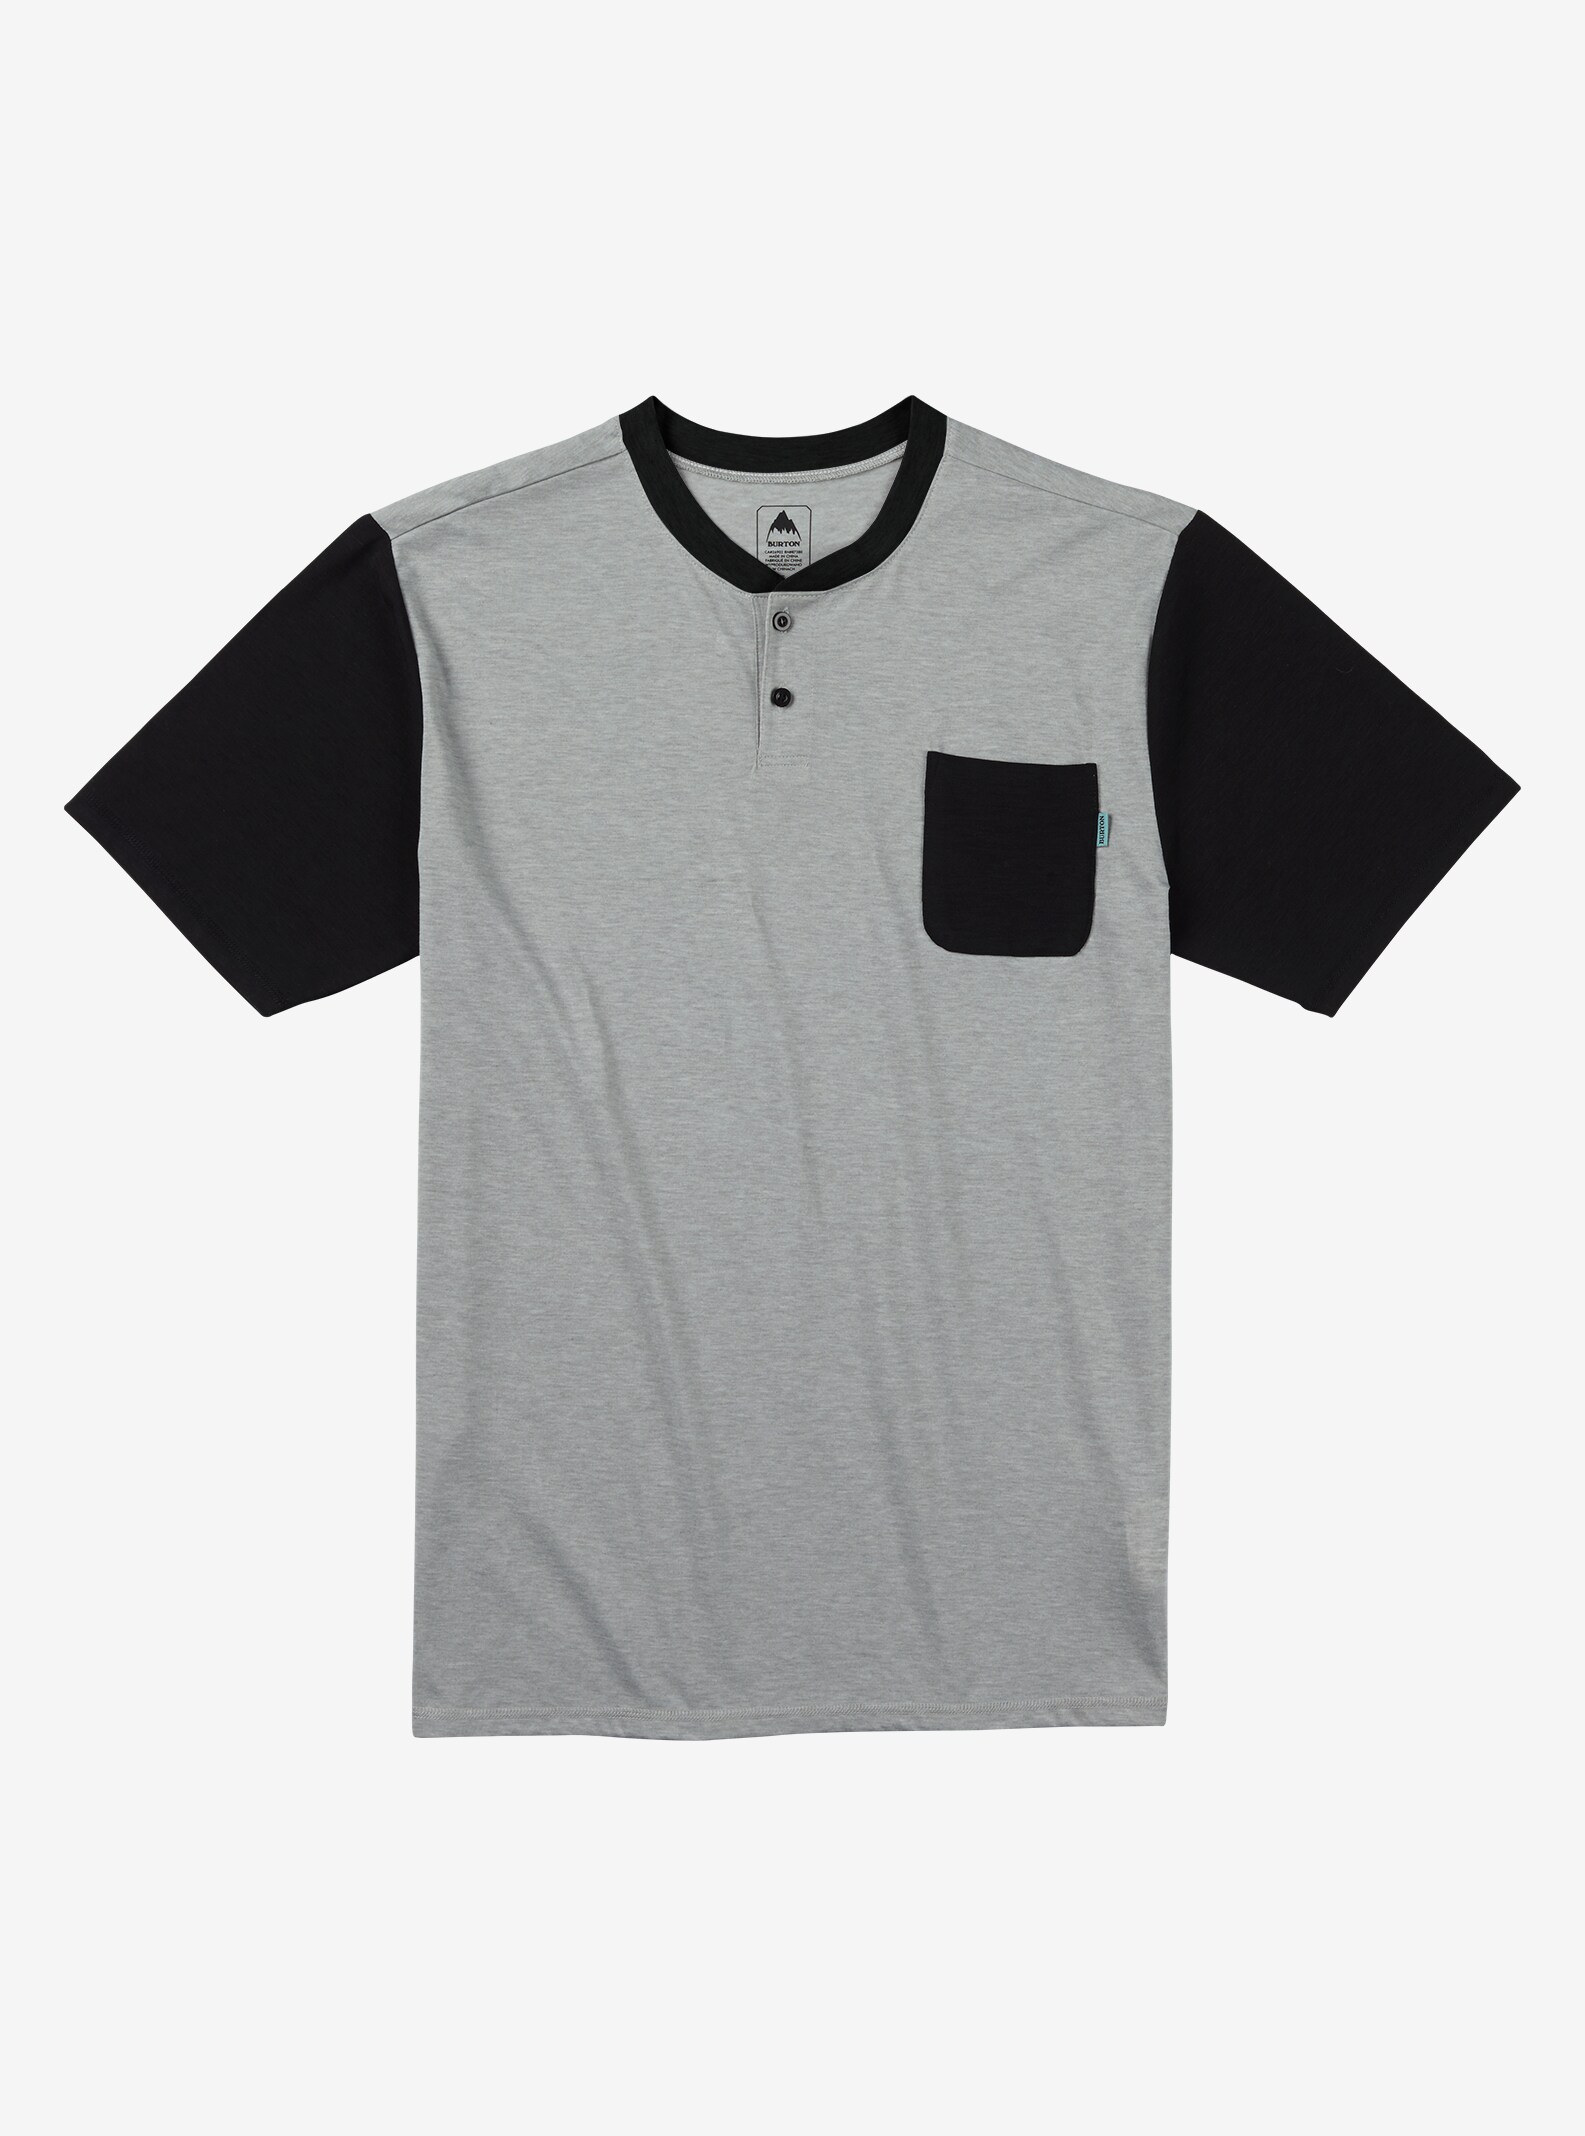 Burton Bradley Henley Tee shown in Gray Heather